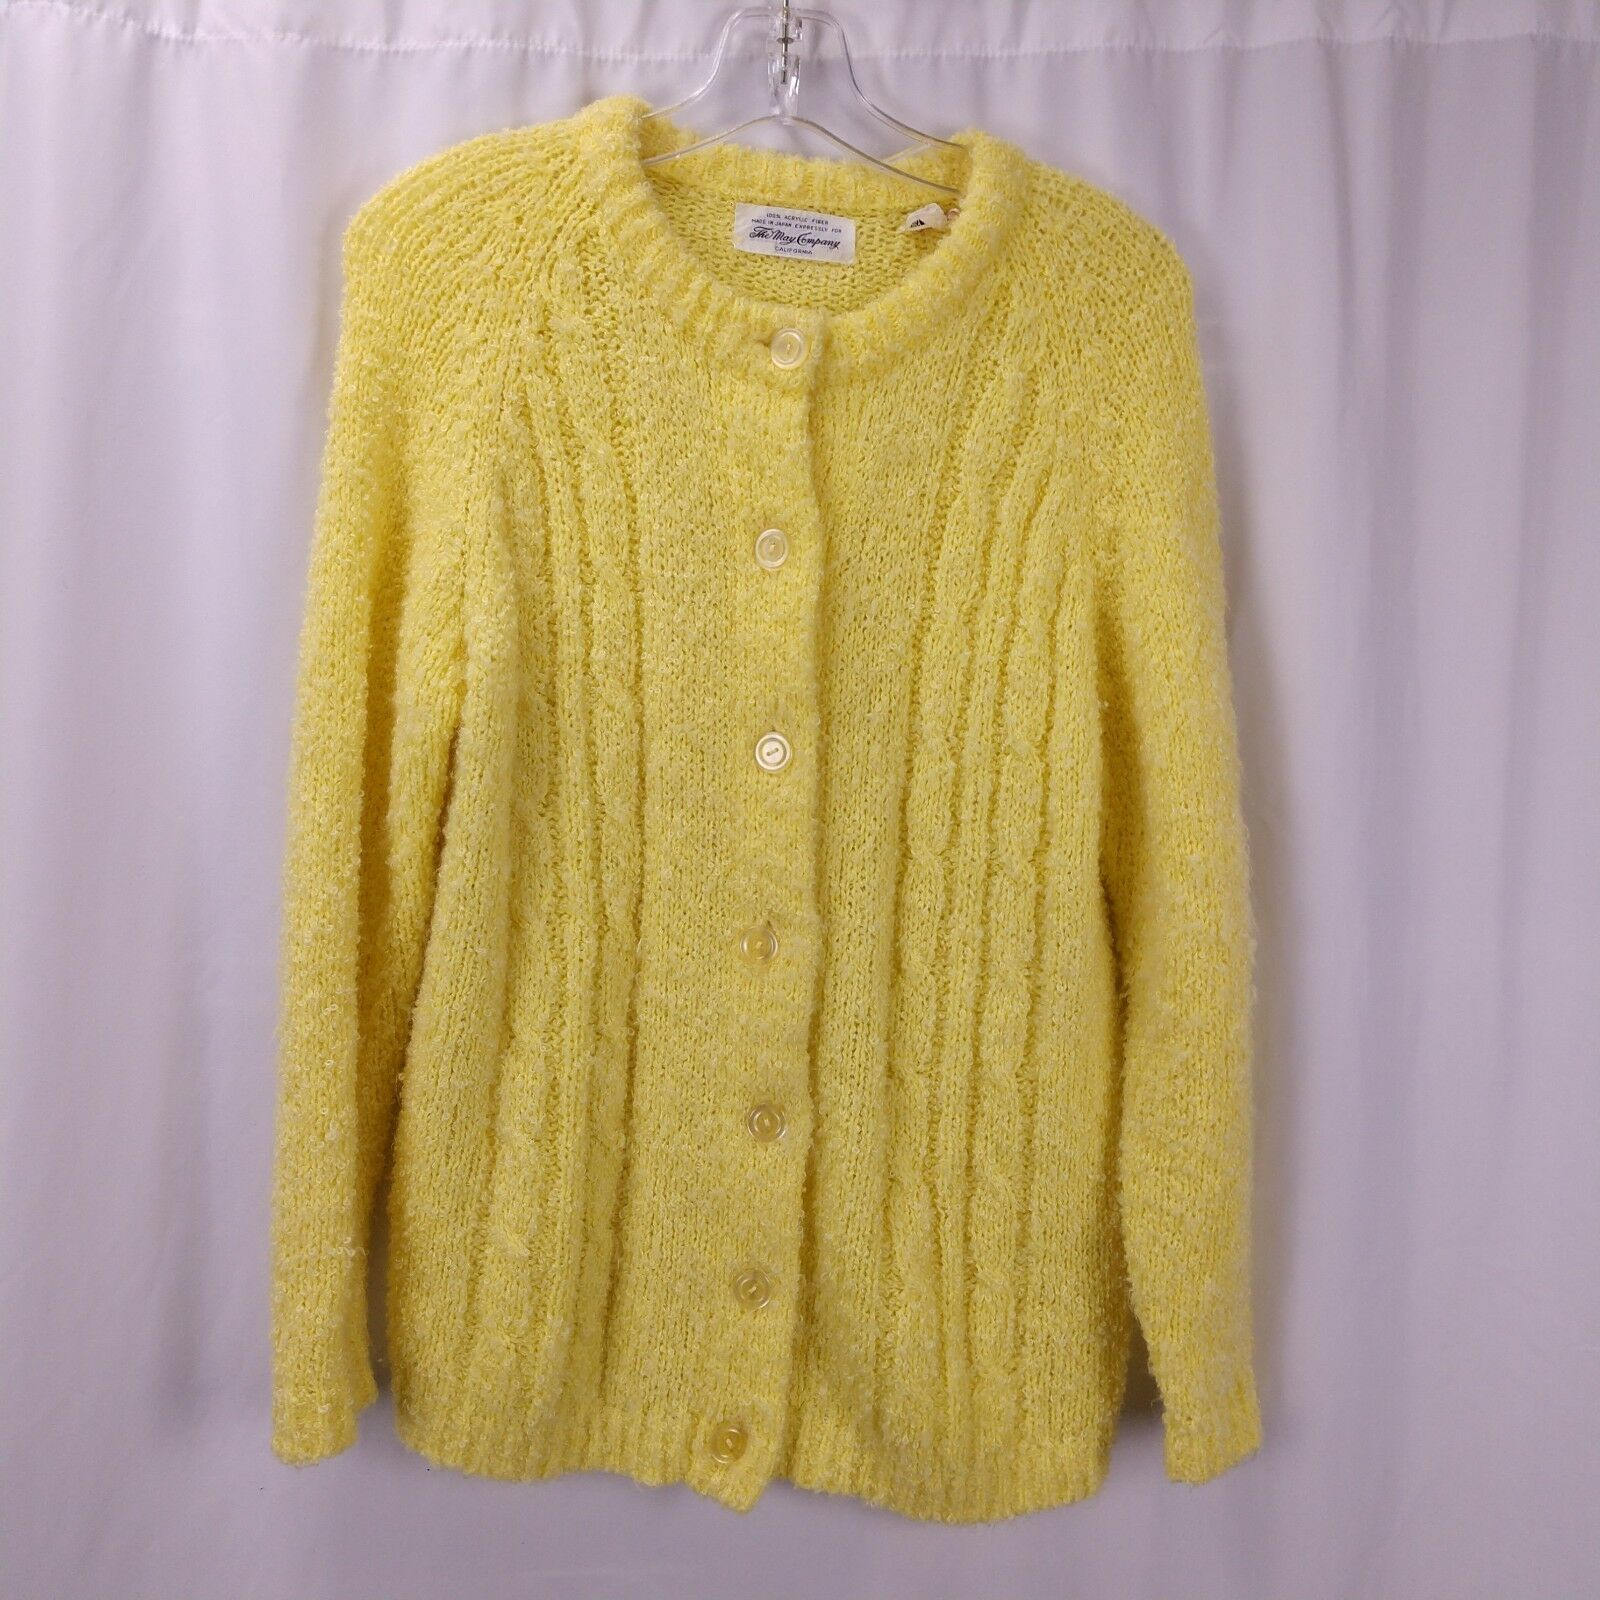 May Company Cardigan Sweater L Vintage 60s Pale Yellow Made in Japan